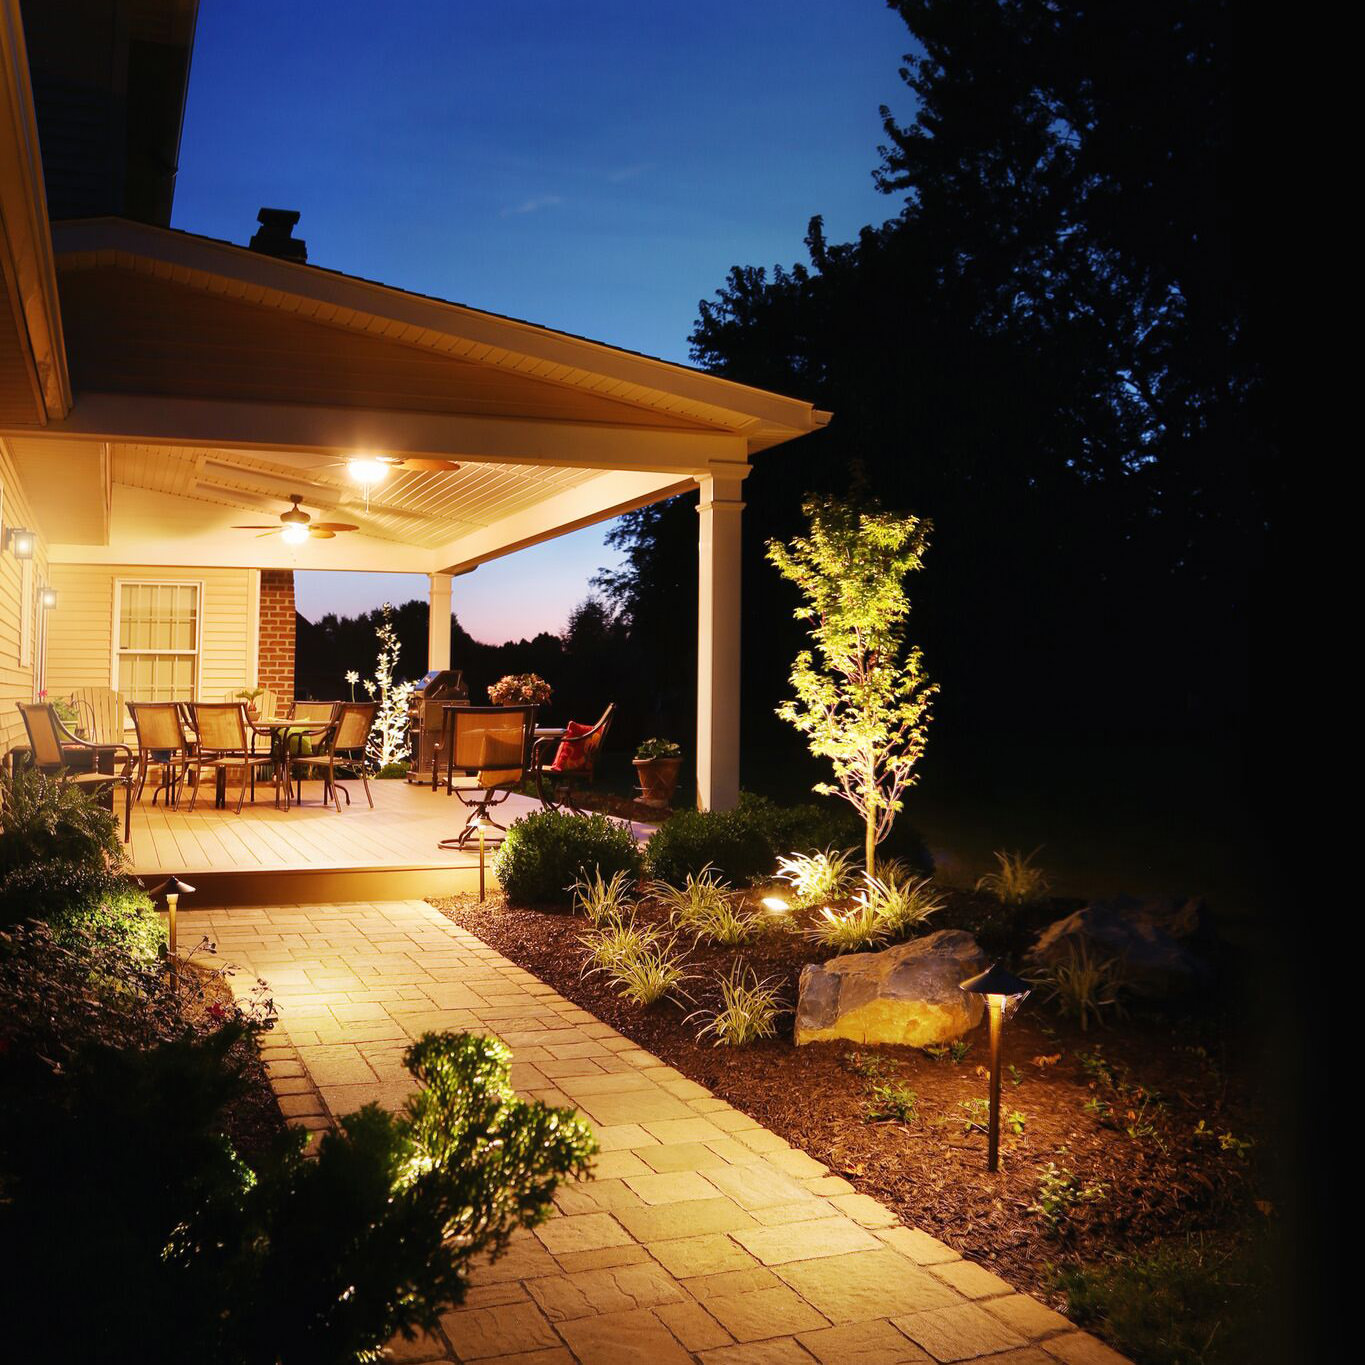 Patio and deck roof systems can be customized to suit any home and provide year-round protection.